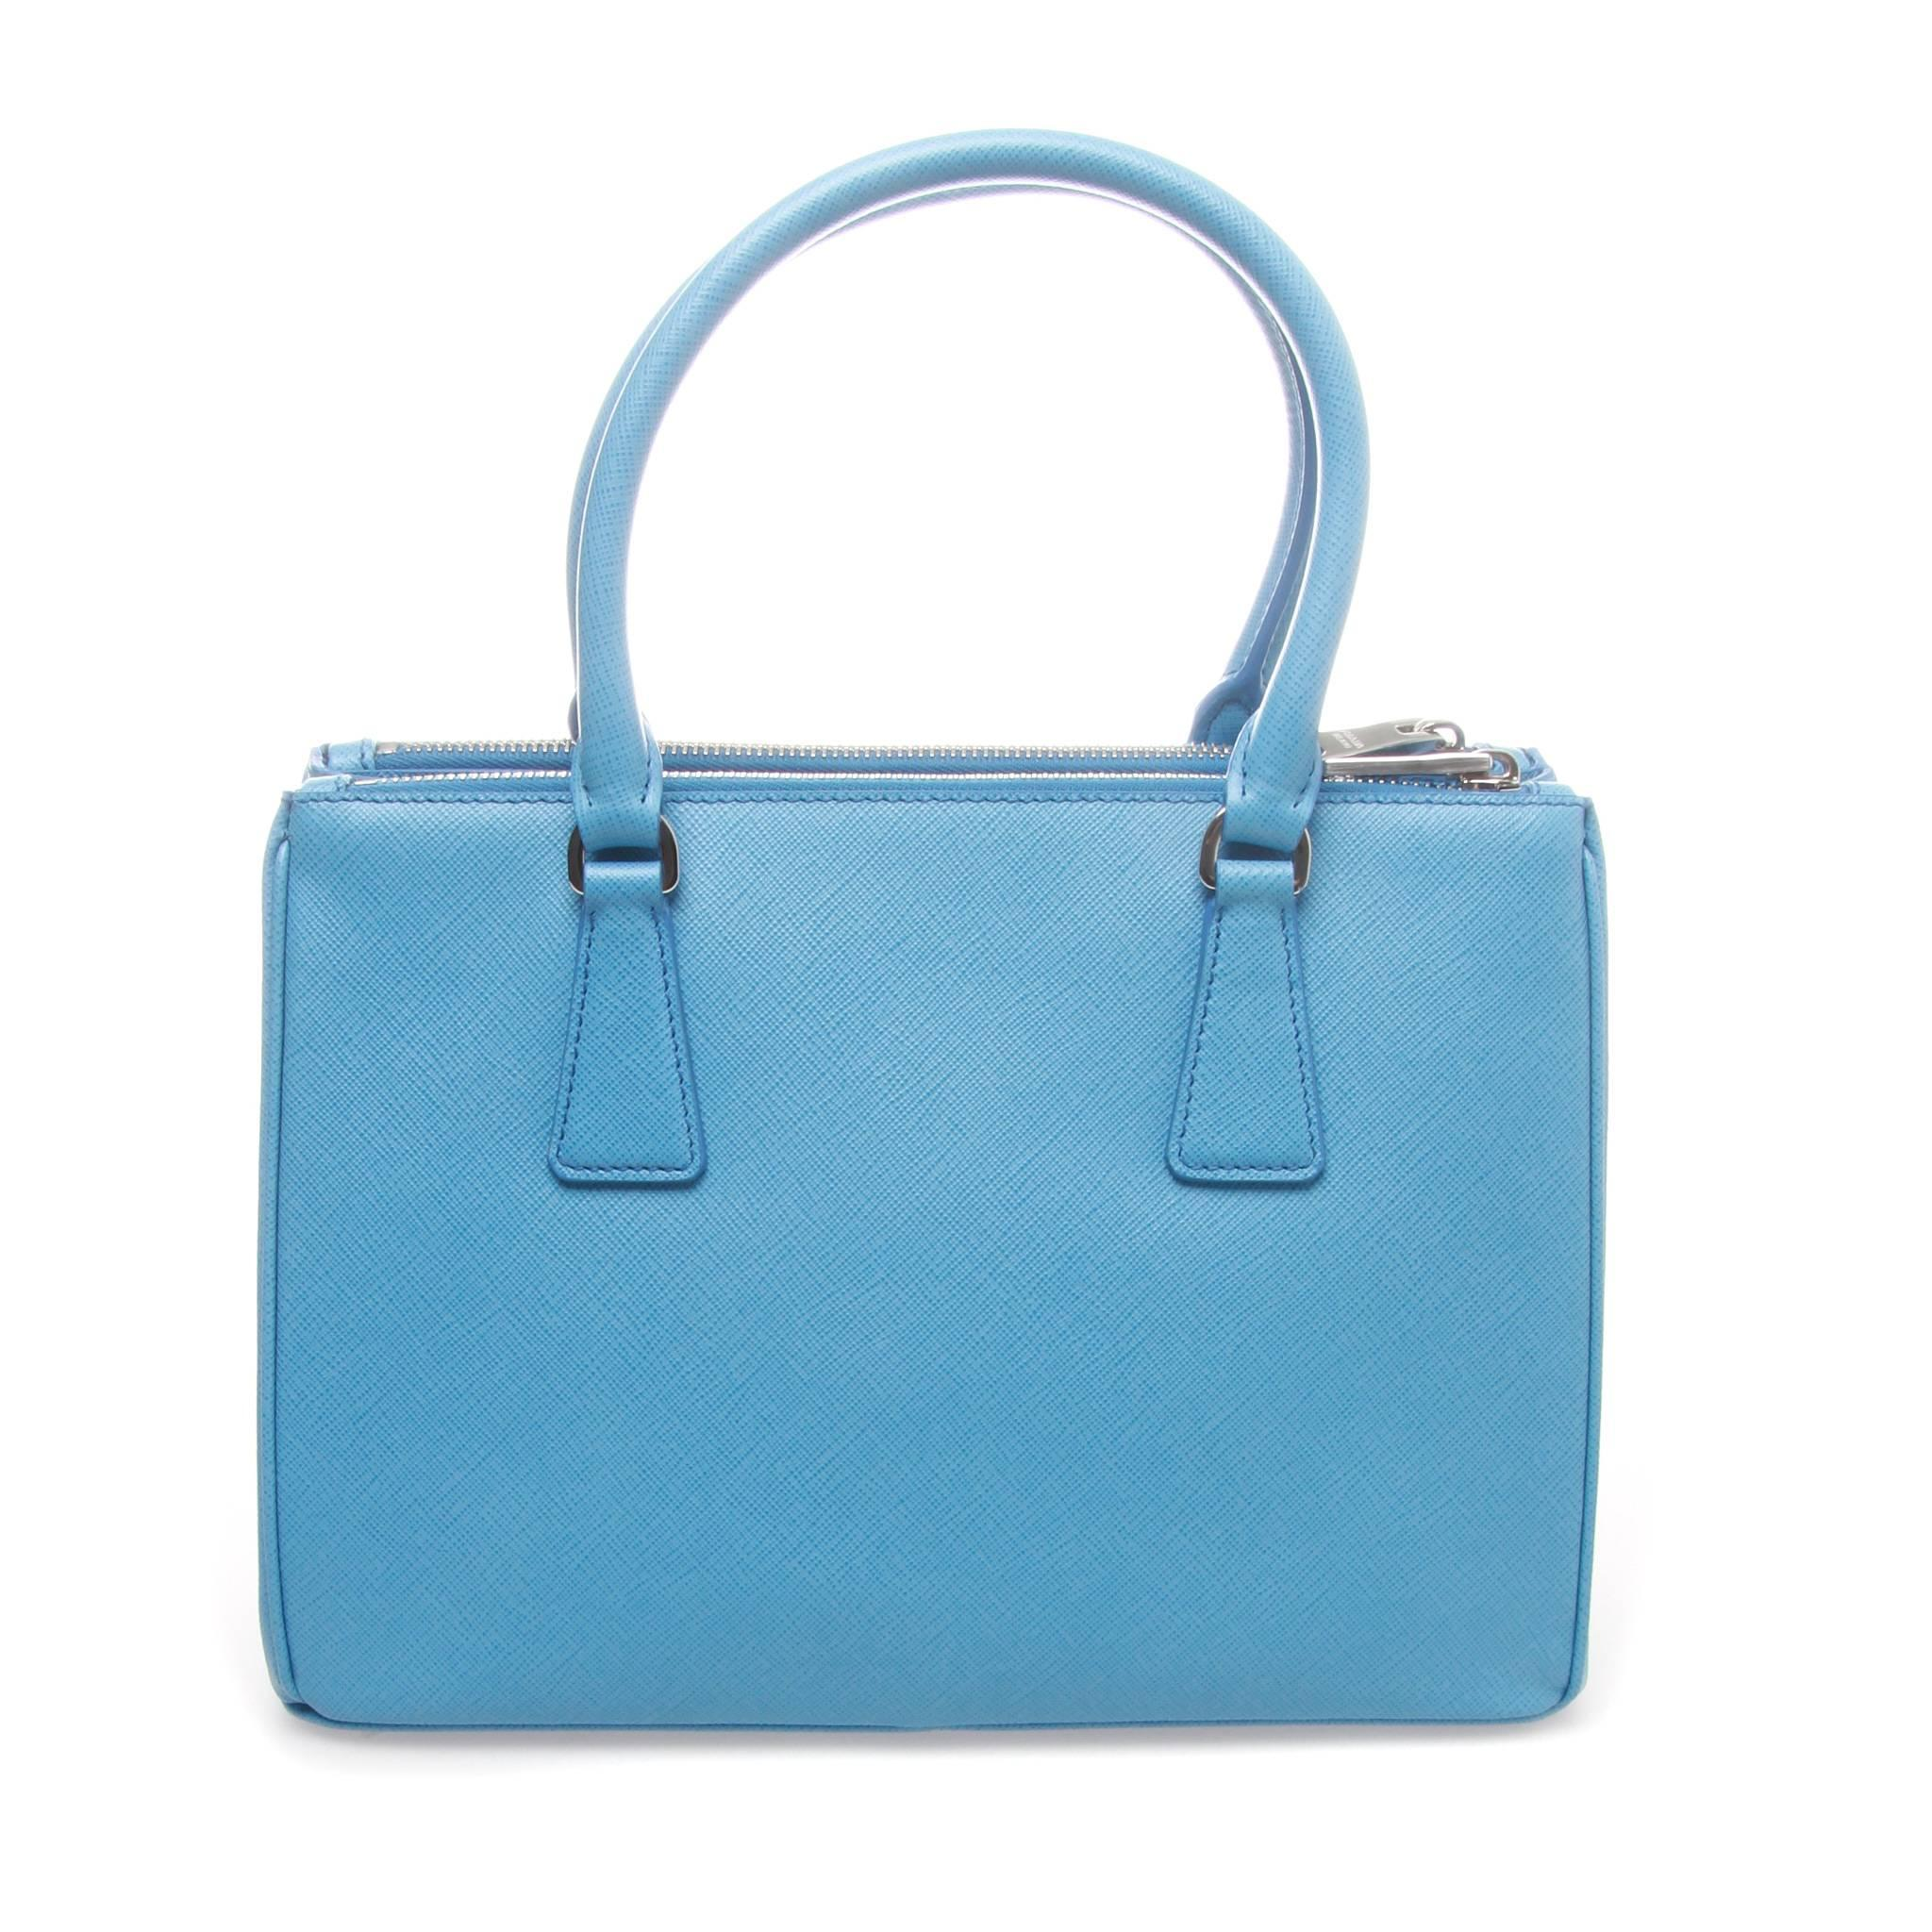 f952fca0dfa21a ... inexpensive prada sea blue 28cm saffiano lux galleria shopping bag in  new condition for sale in